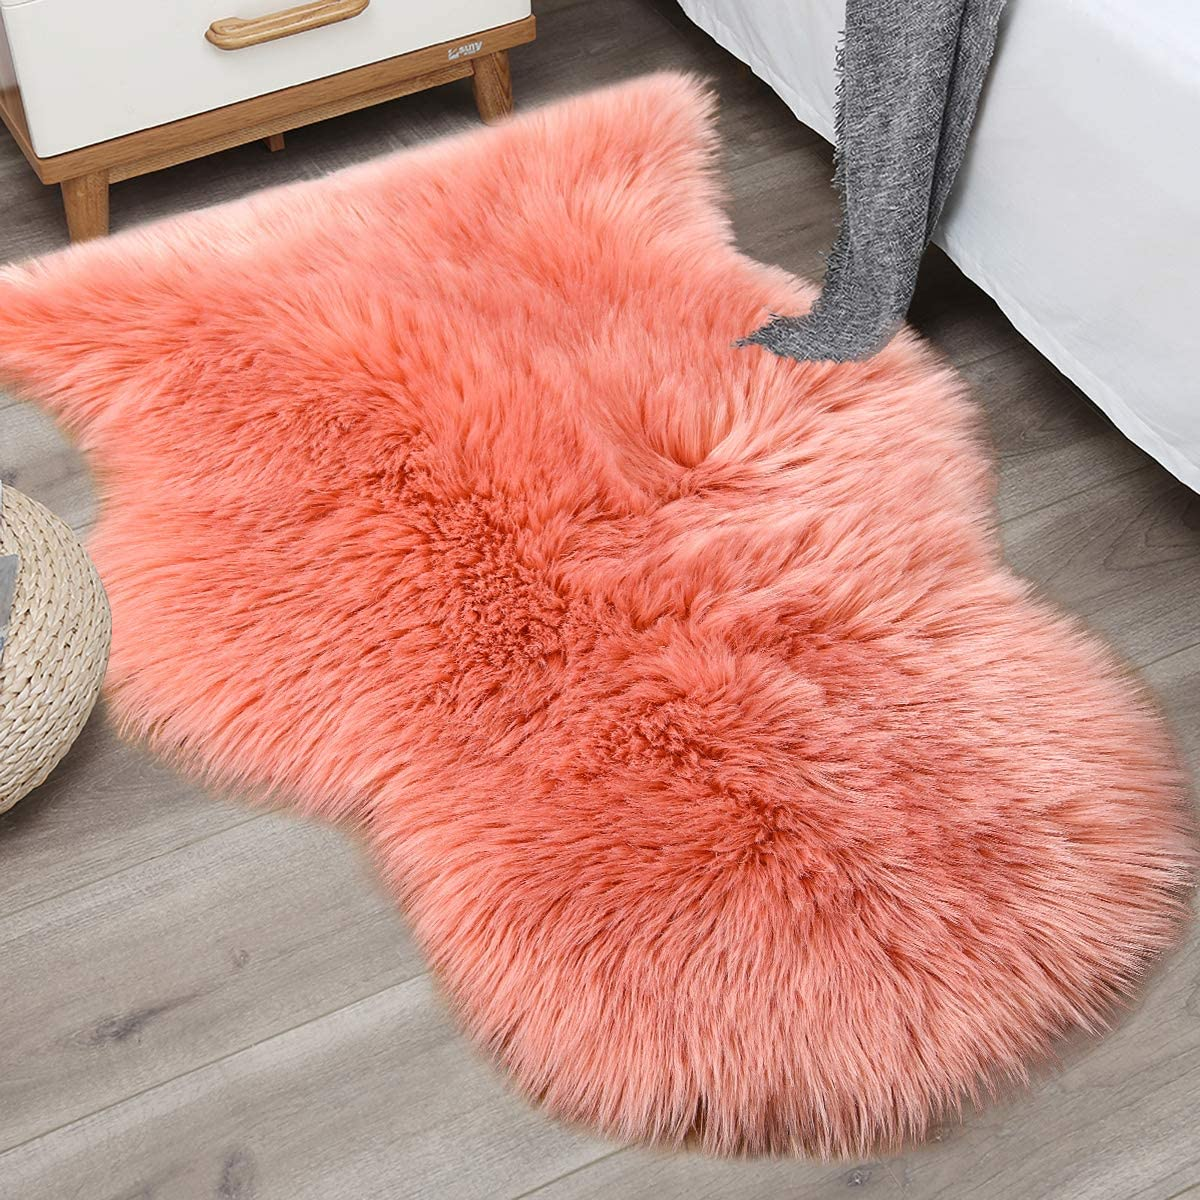 Noahas 2ft x 3ft Faux Fur Sheepskin Rugs Luxury Fluffy Rug for Bedroom Sofa Chair Cover Fuzzy Throw Home Decor Small Shaggy Carpet, Coral Red